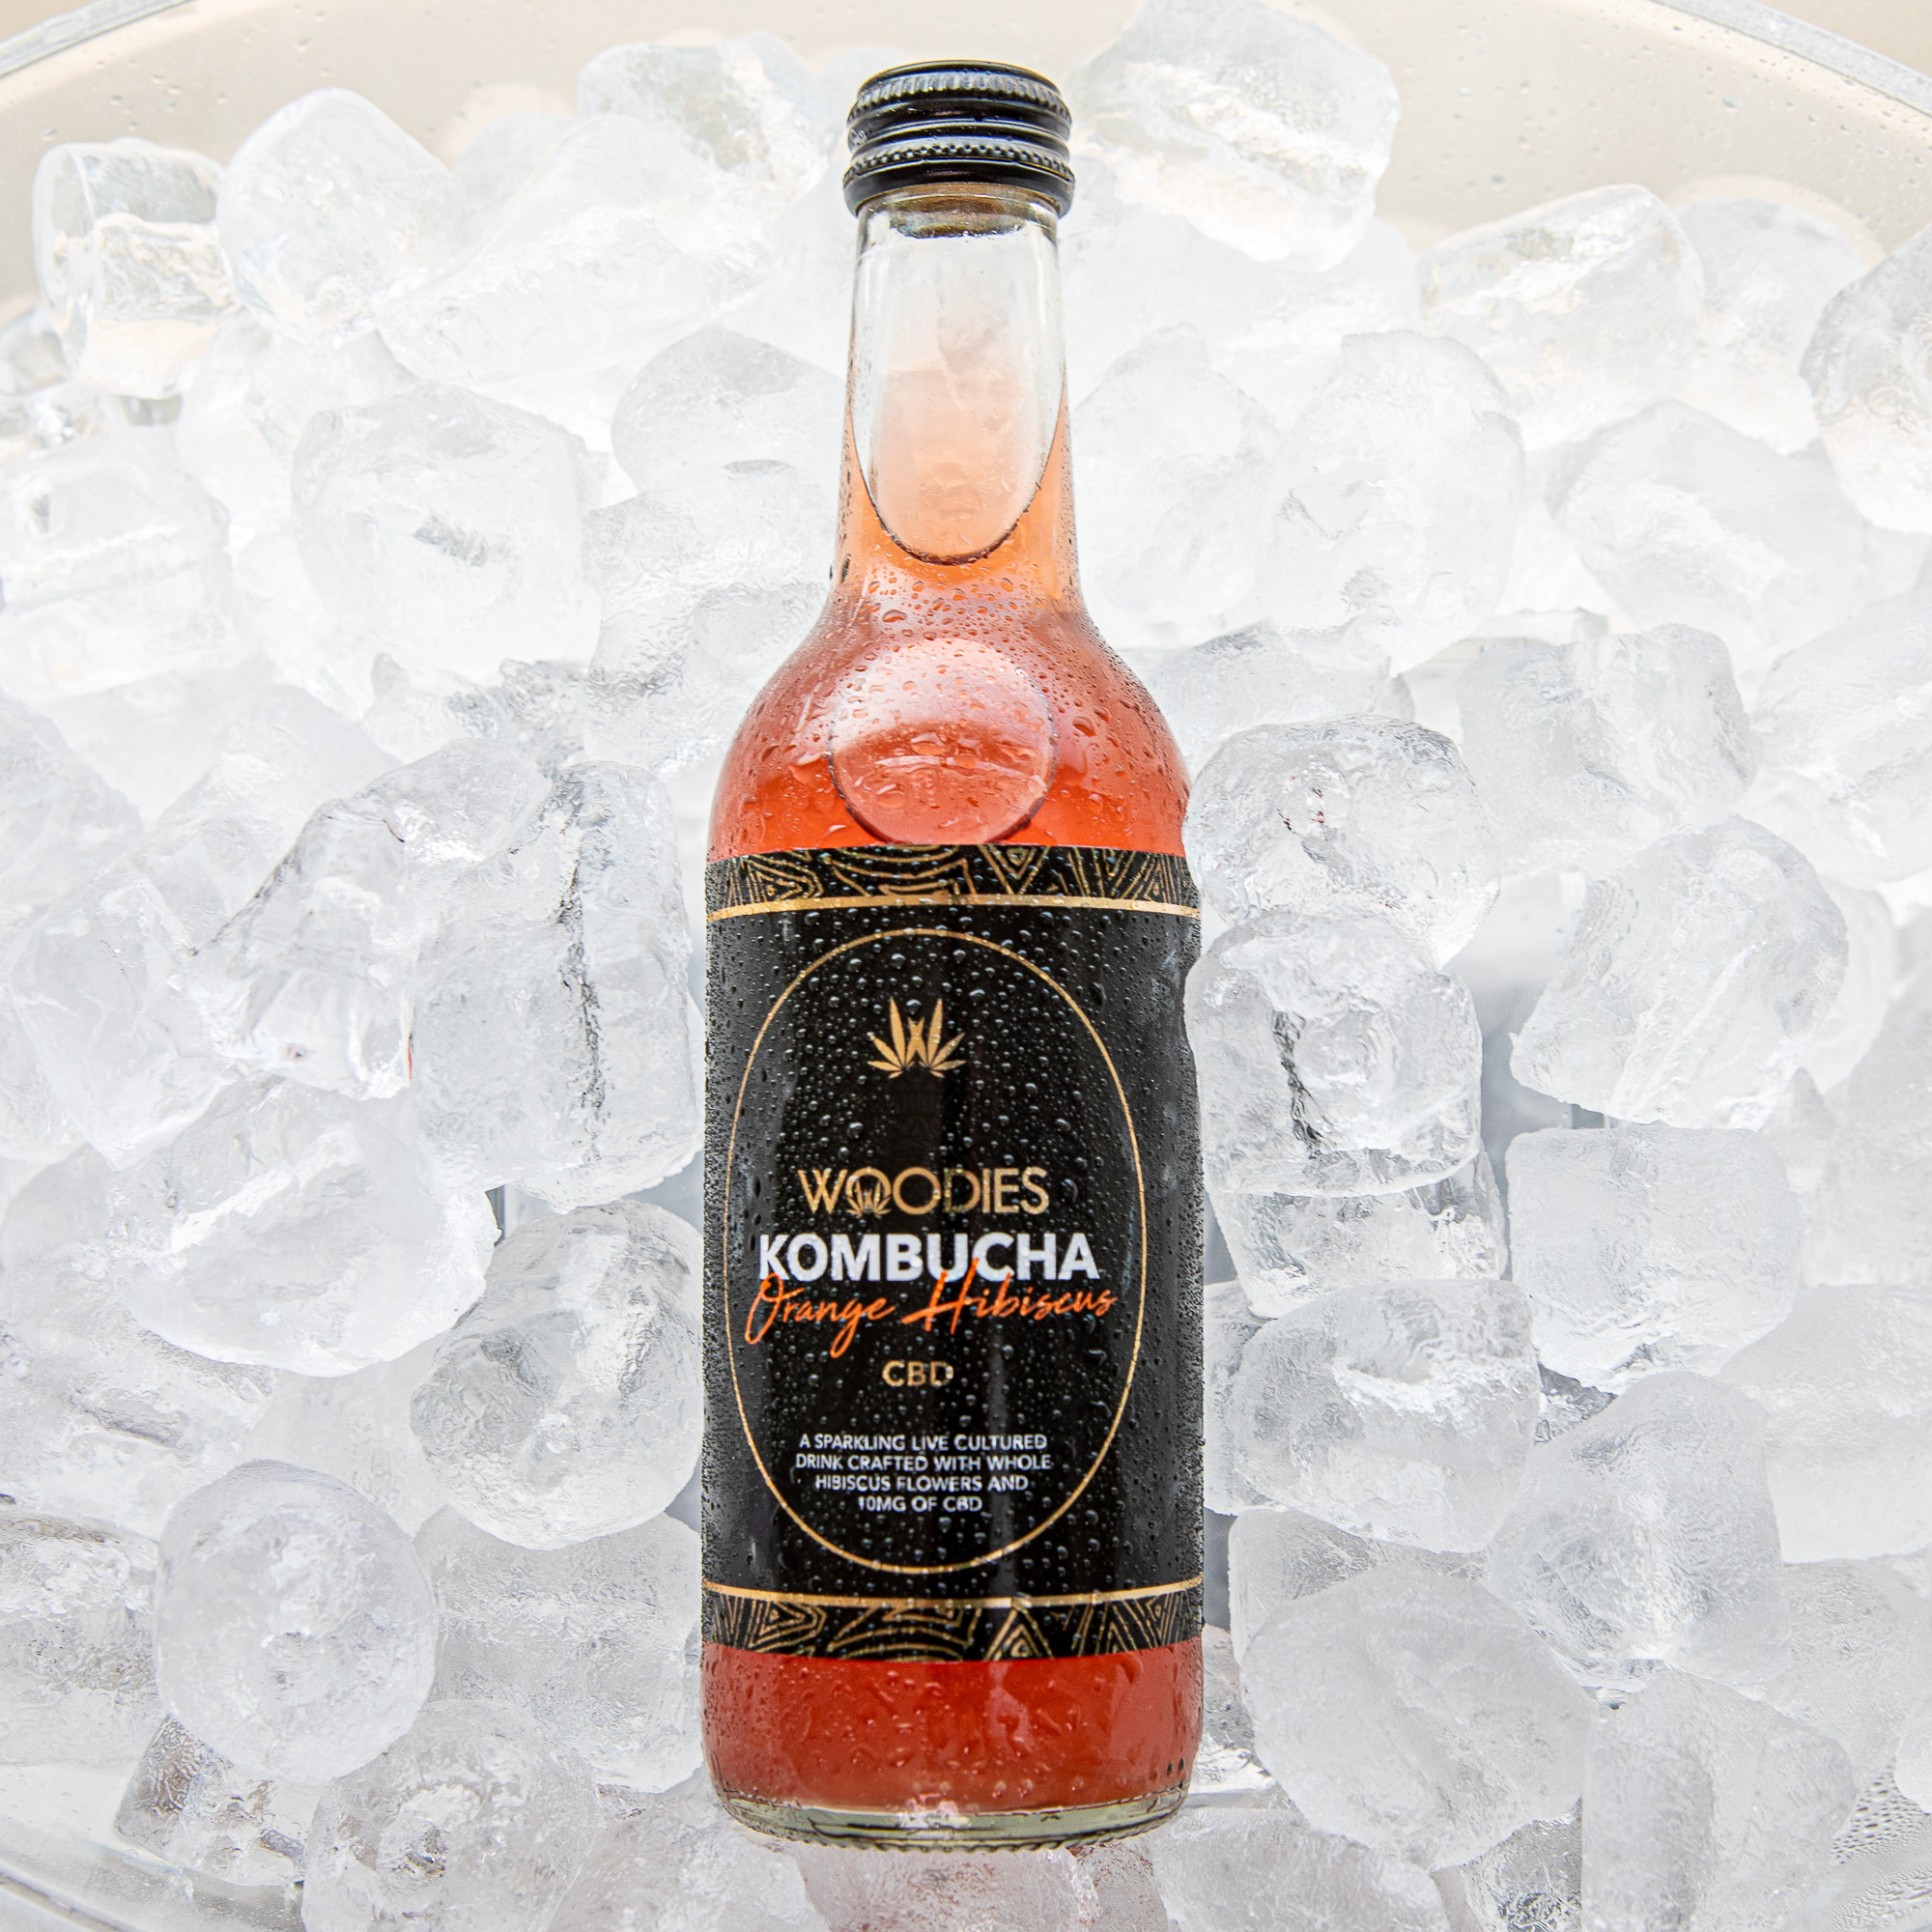 Woodies CBD Kombucha Orange & Hibiscus